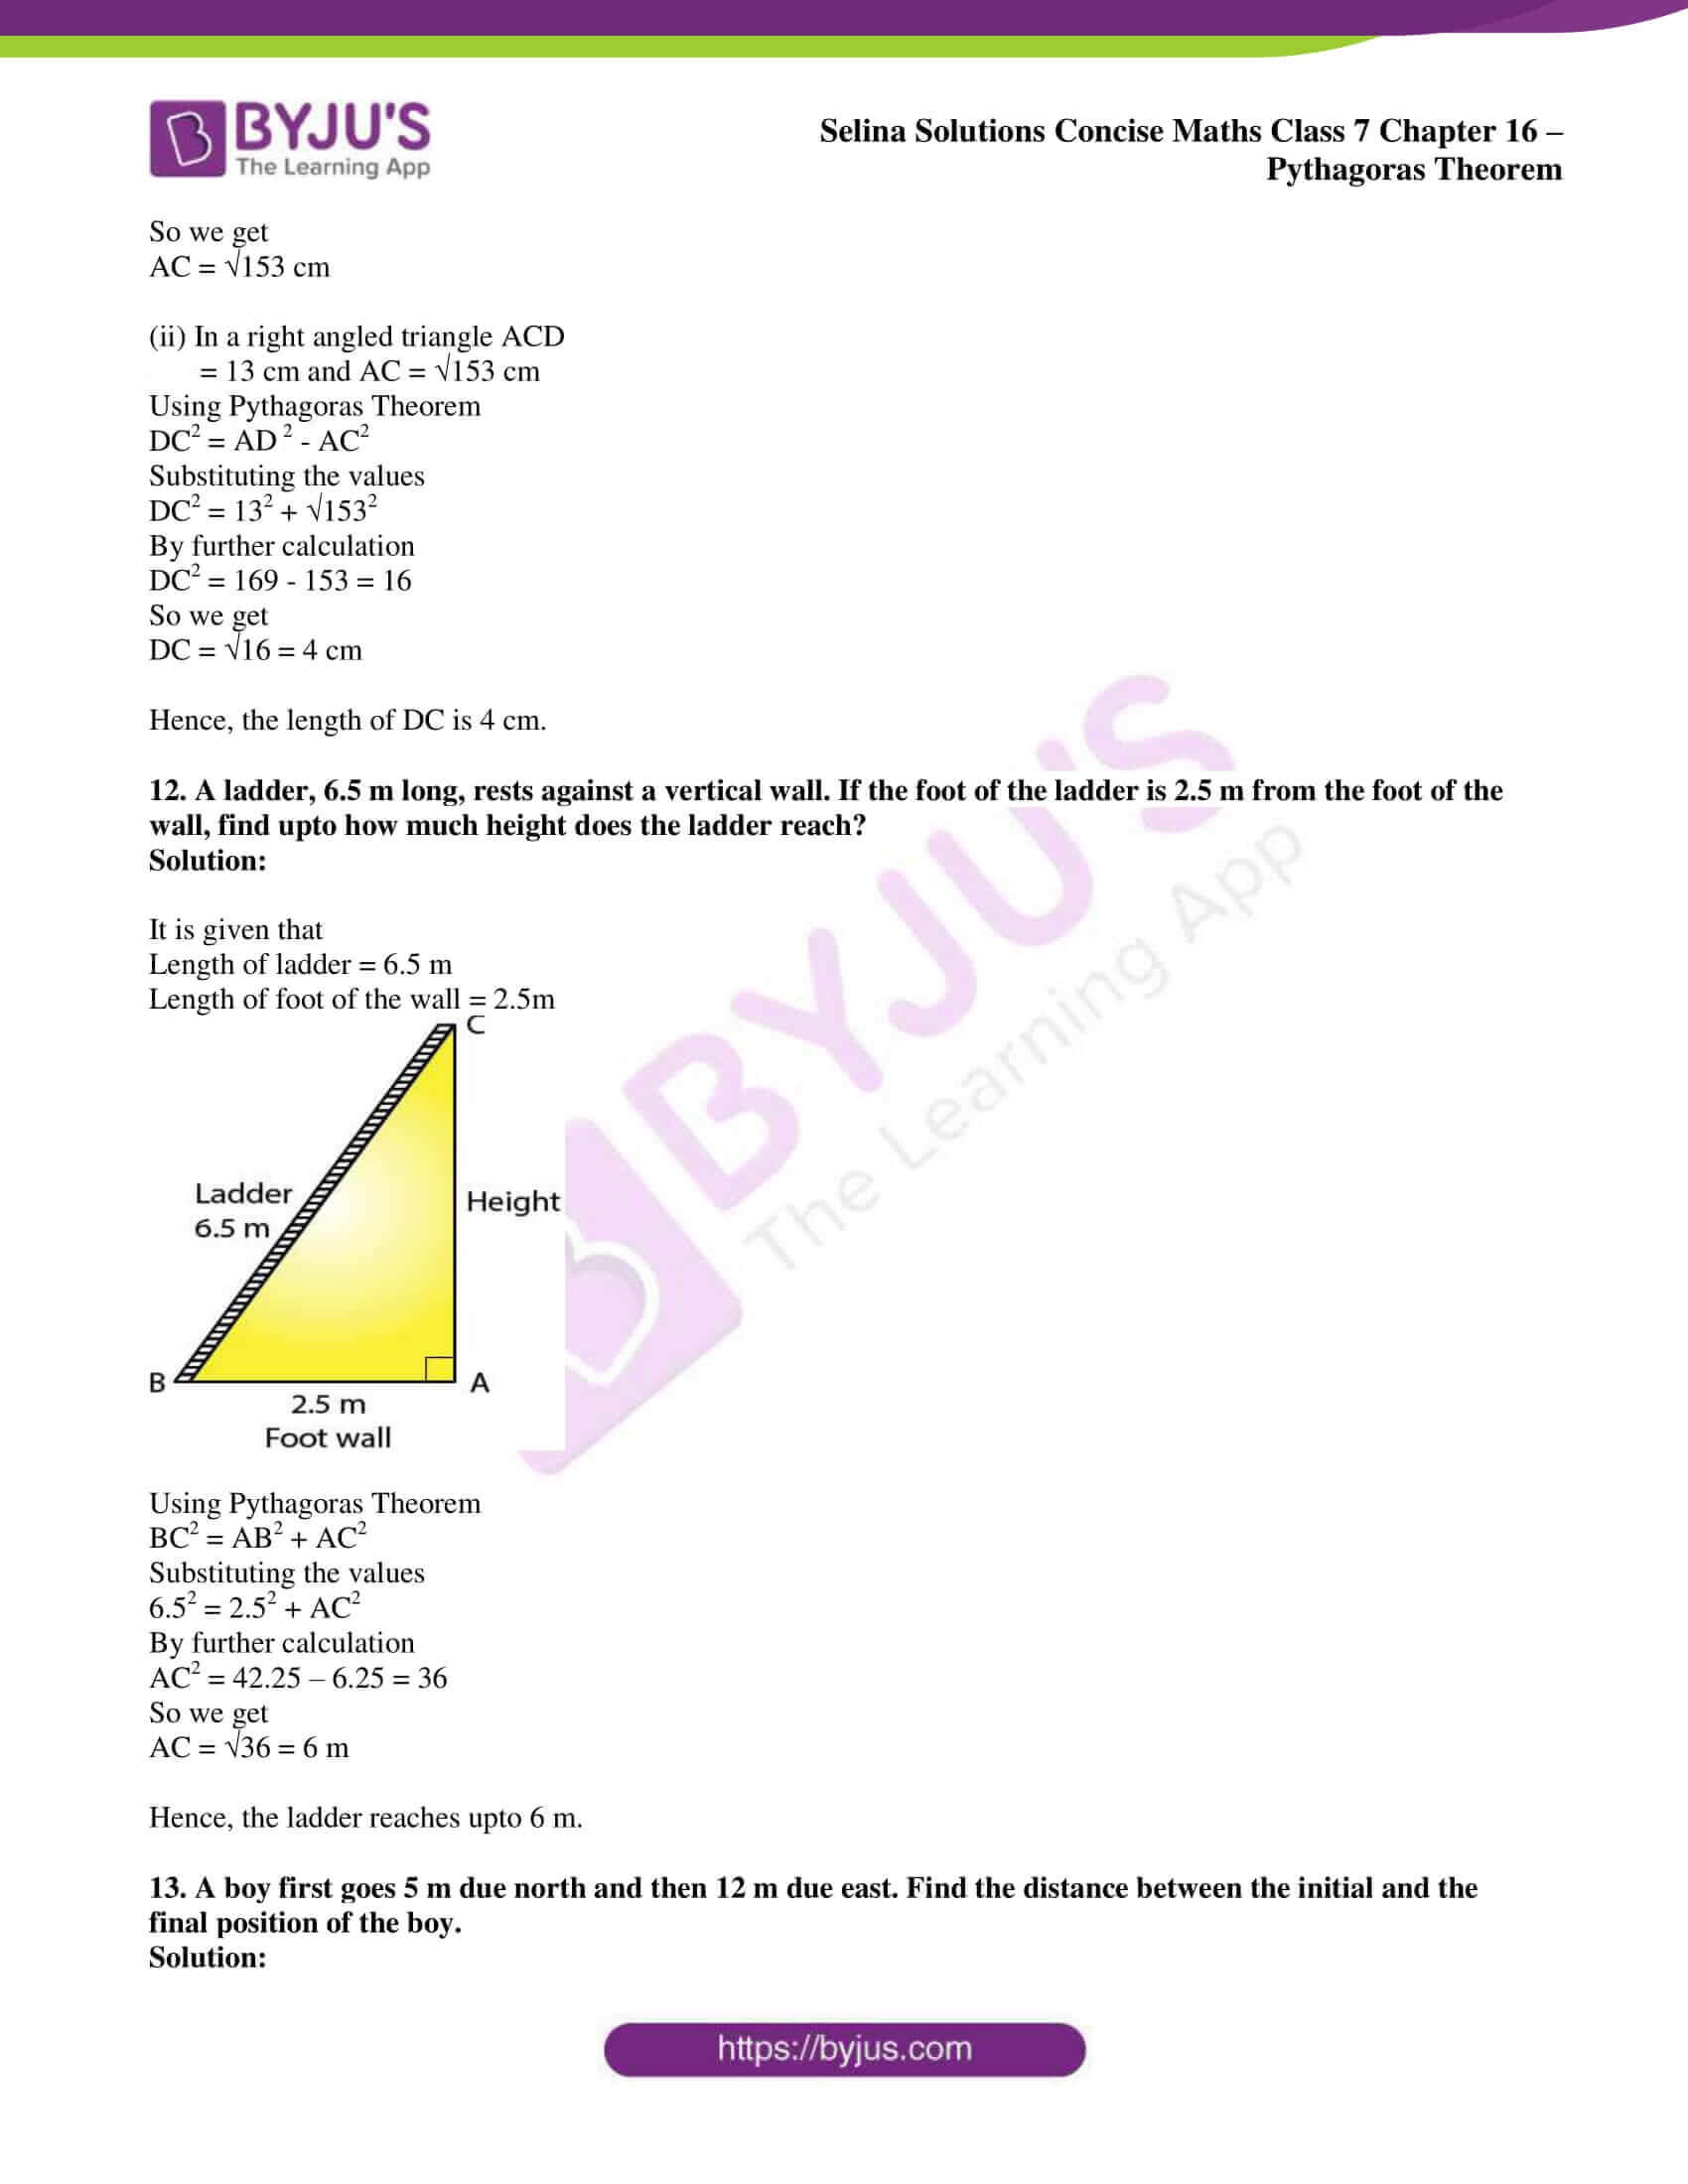 selina sol concise maths class 7 chapter 16 10